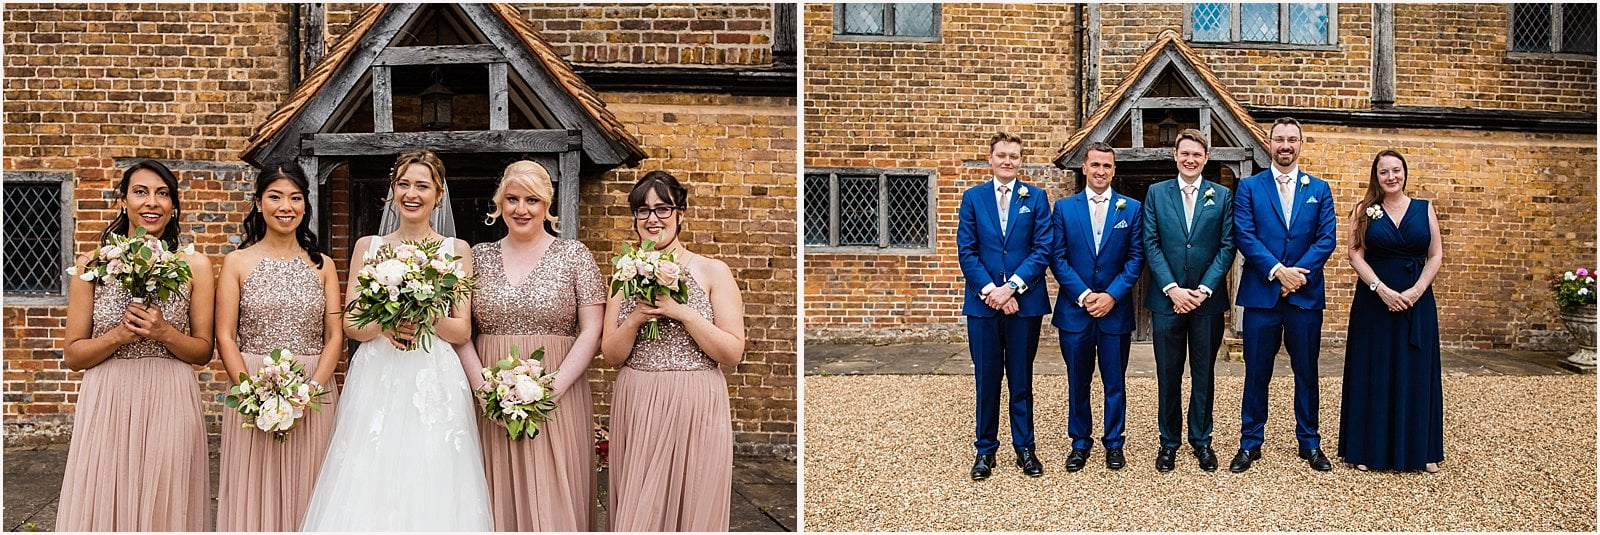 Beautiful Lillibrooke Manor Wedding - Ksenia & Iain 31